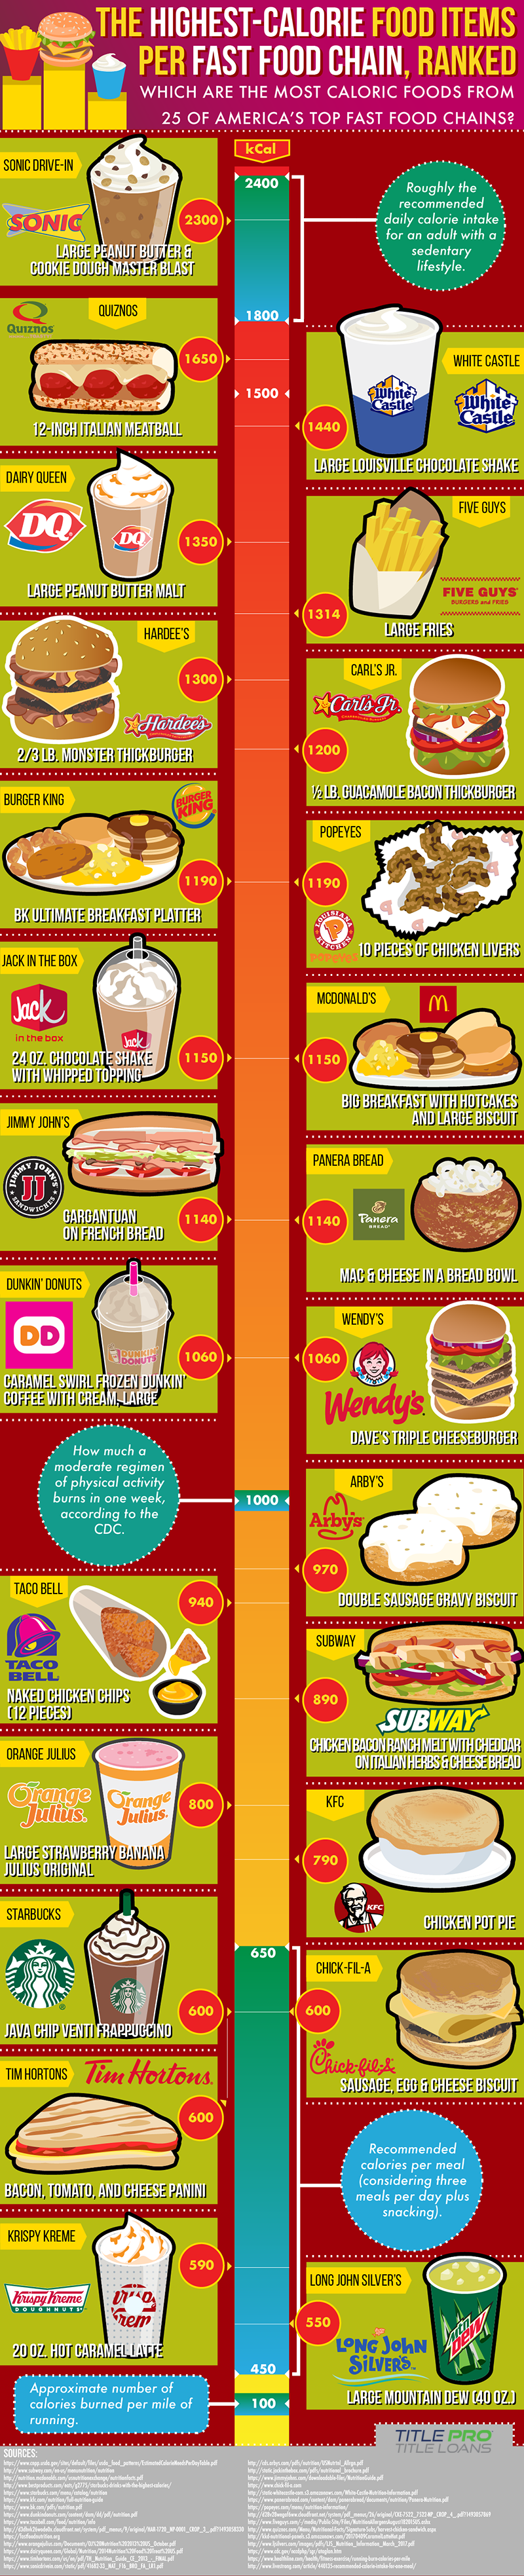 Calorie Ranking of 25 Popular Fast Food Items - Infographic